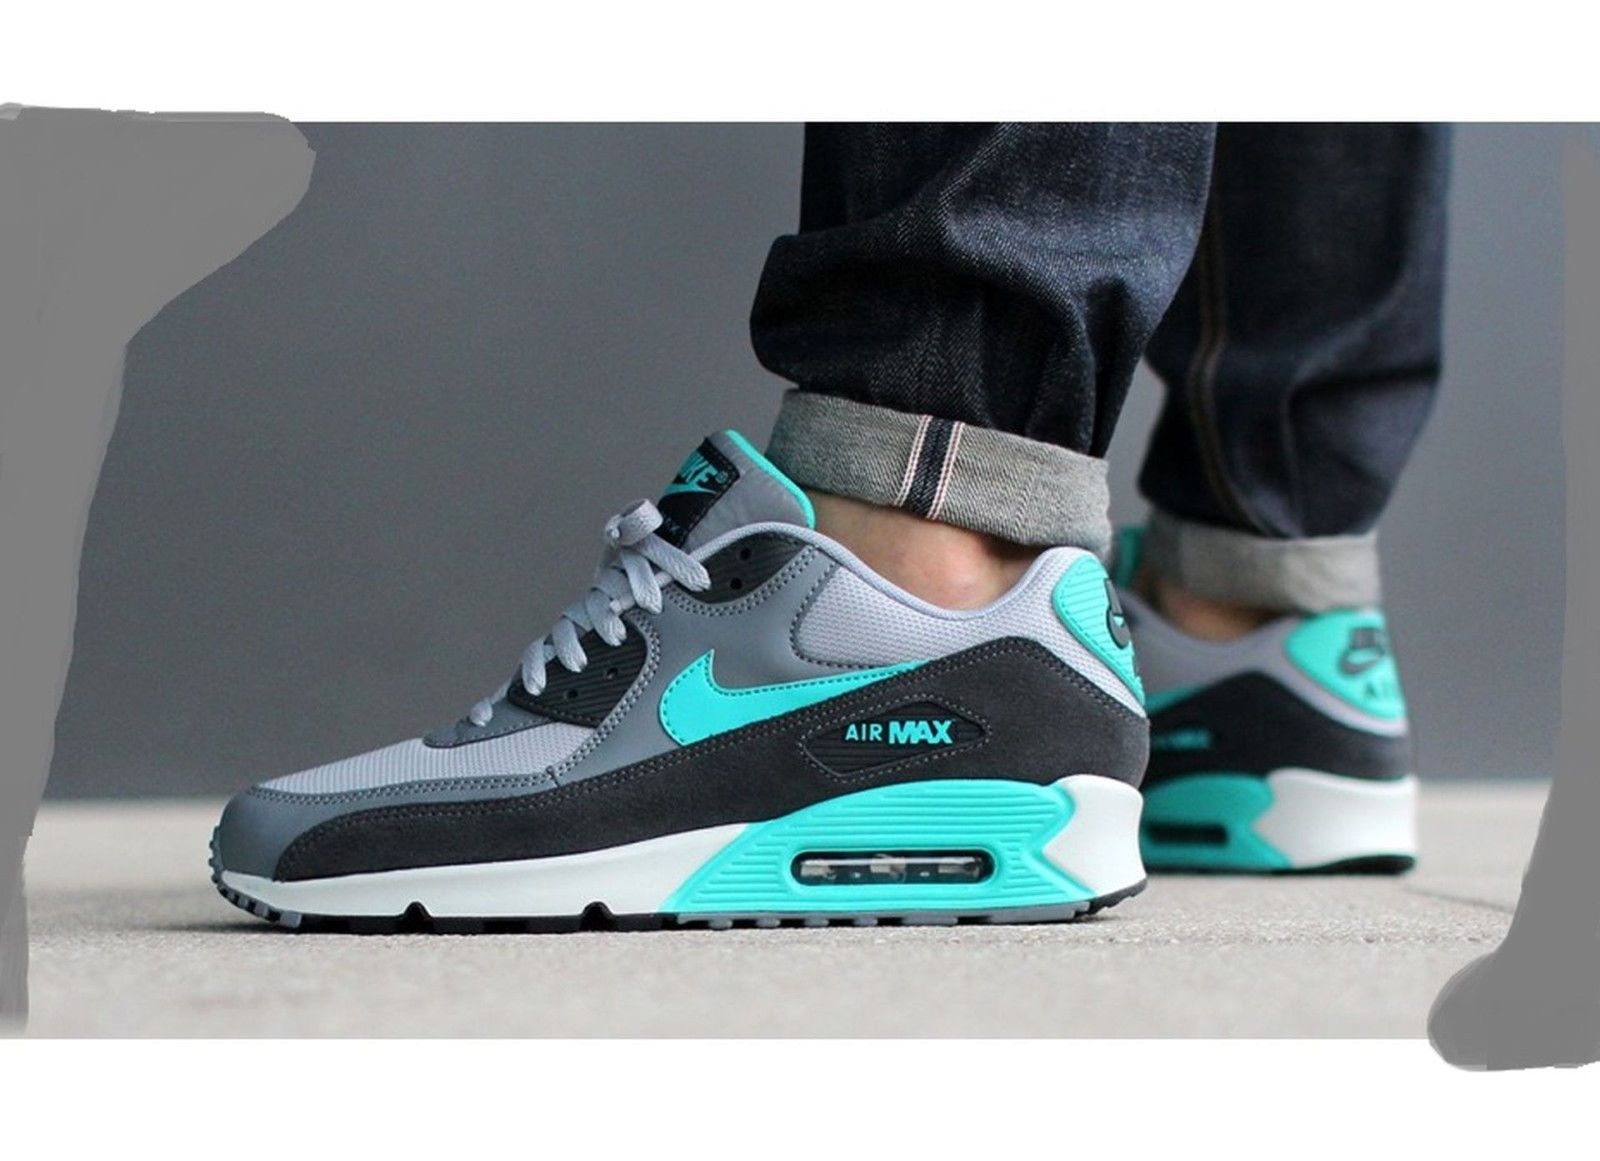 NIKE AIR MAX 90 ESSENTIAL HYPER JADE COOL GREY 537384 033 $135